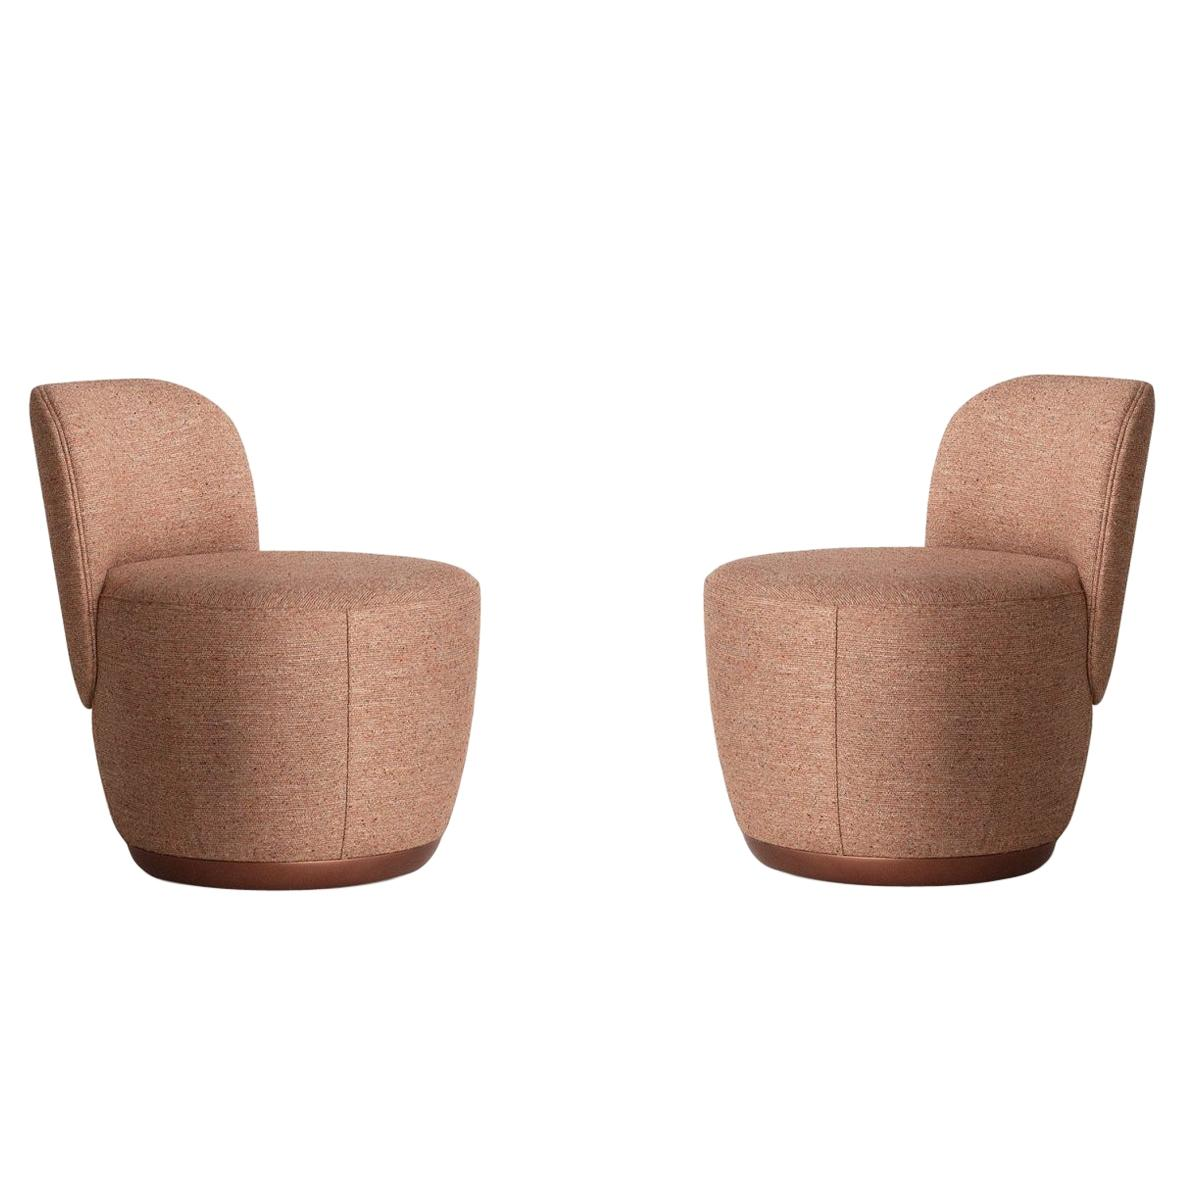 Contemporary Swivel Armchair Set in Cocktail Textured Fabric